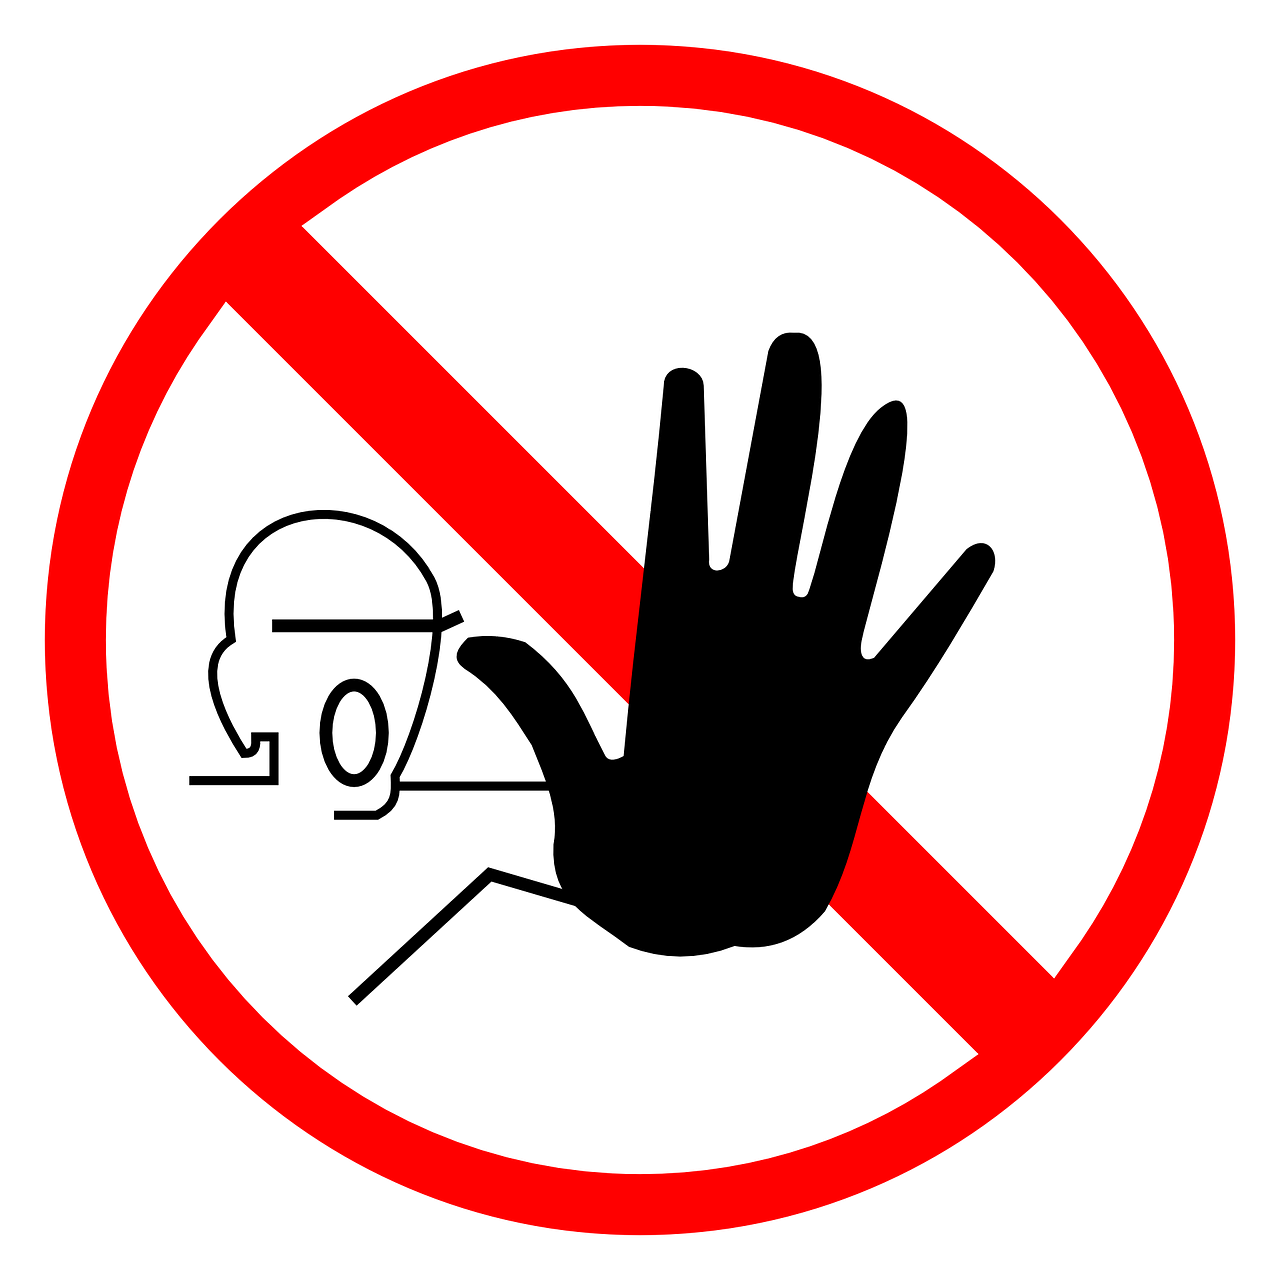 sign,stop,halt,warning,hand,forbidden,symbol,direction,red,circle,round,free vector graphics,free pictures, free photos, free images, royalty free, free illustrations, public domain